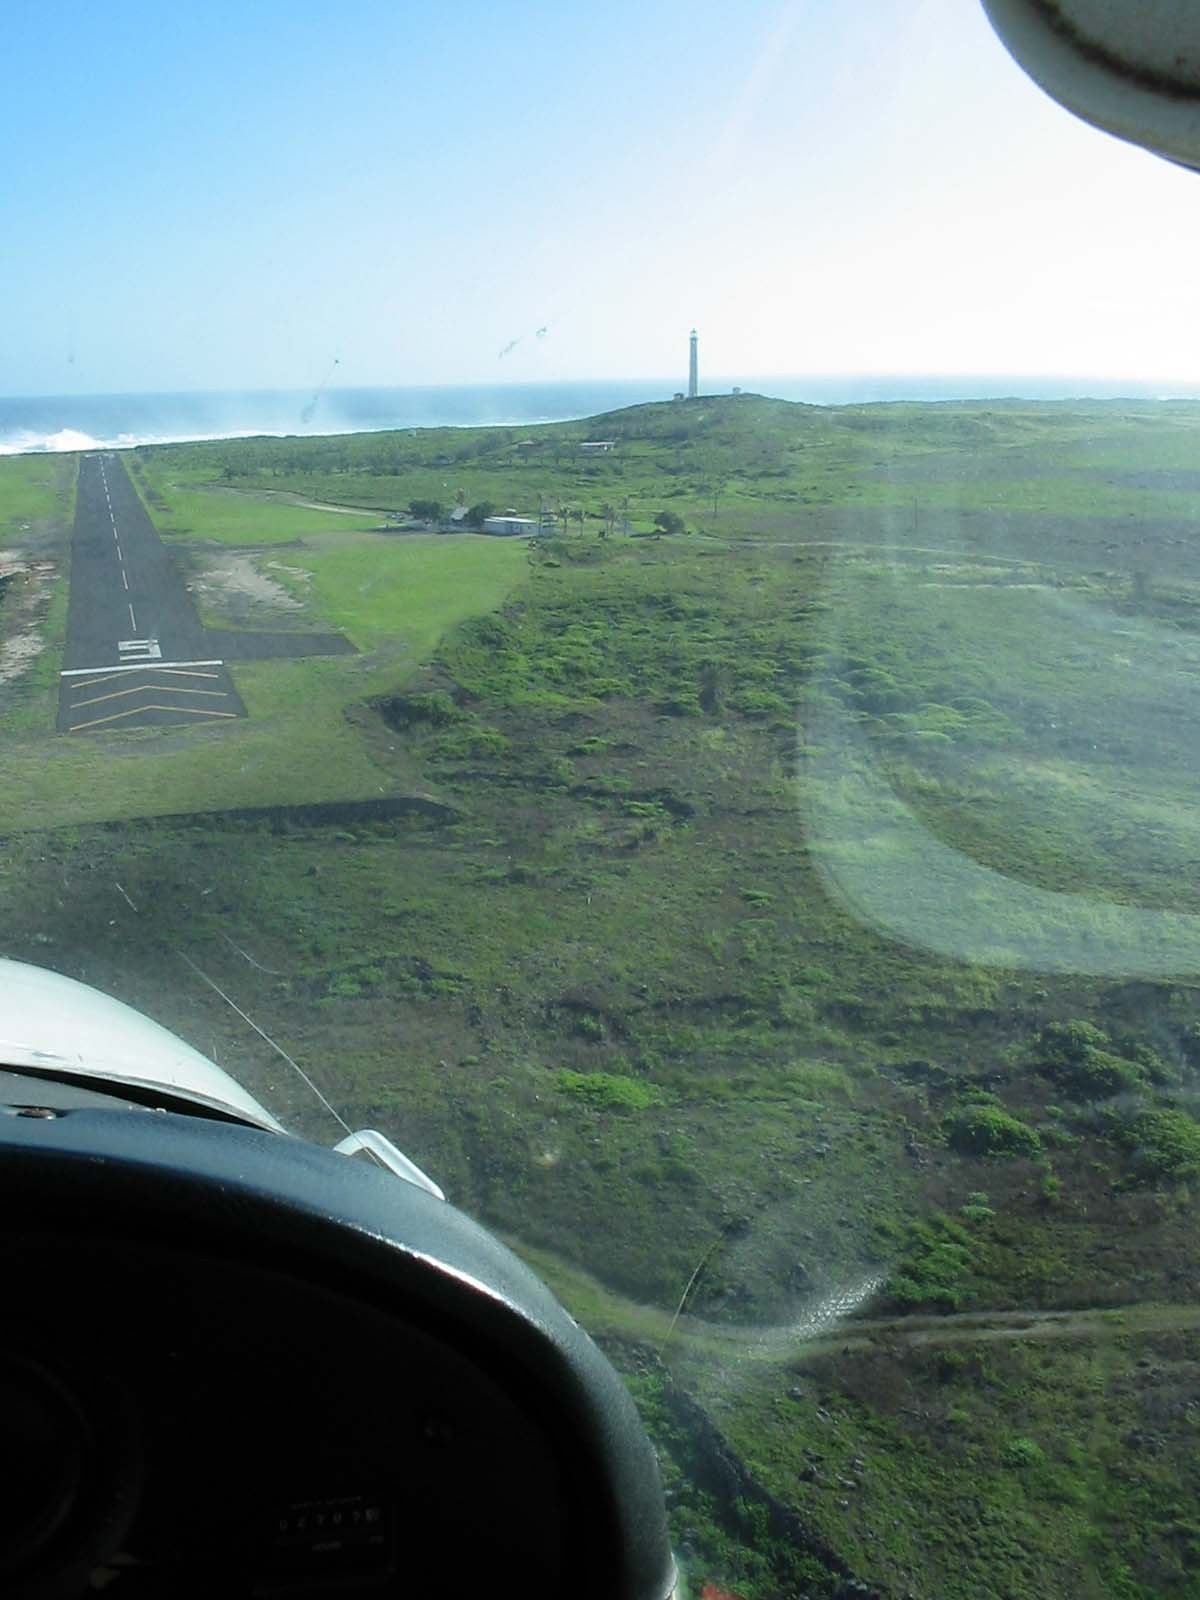 View of Kalaupapa runway from an airplane as it is landing